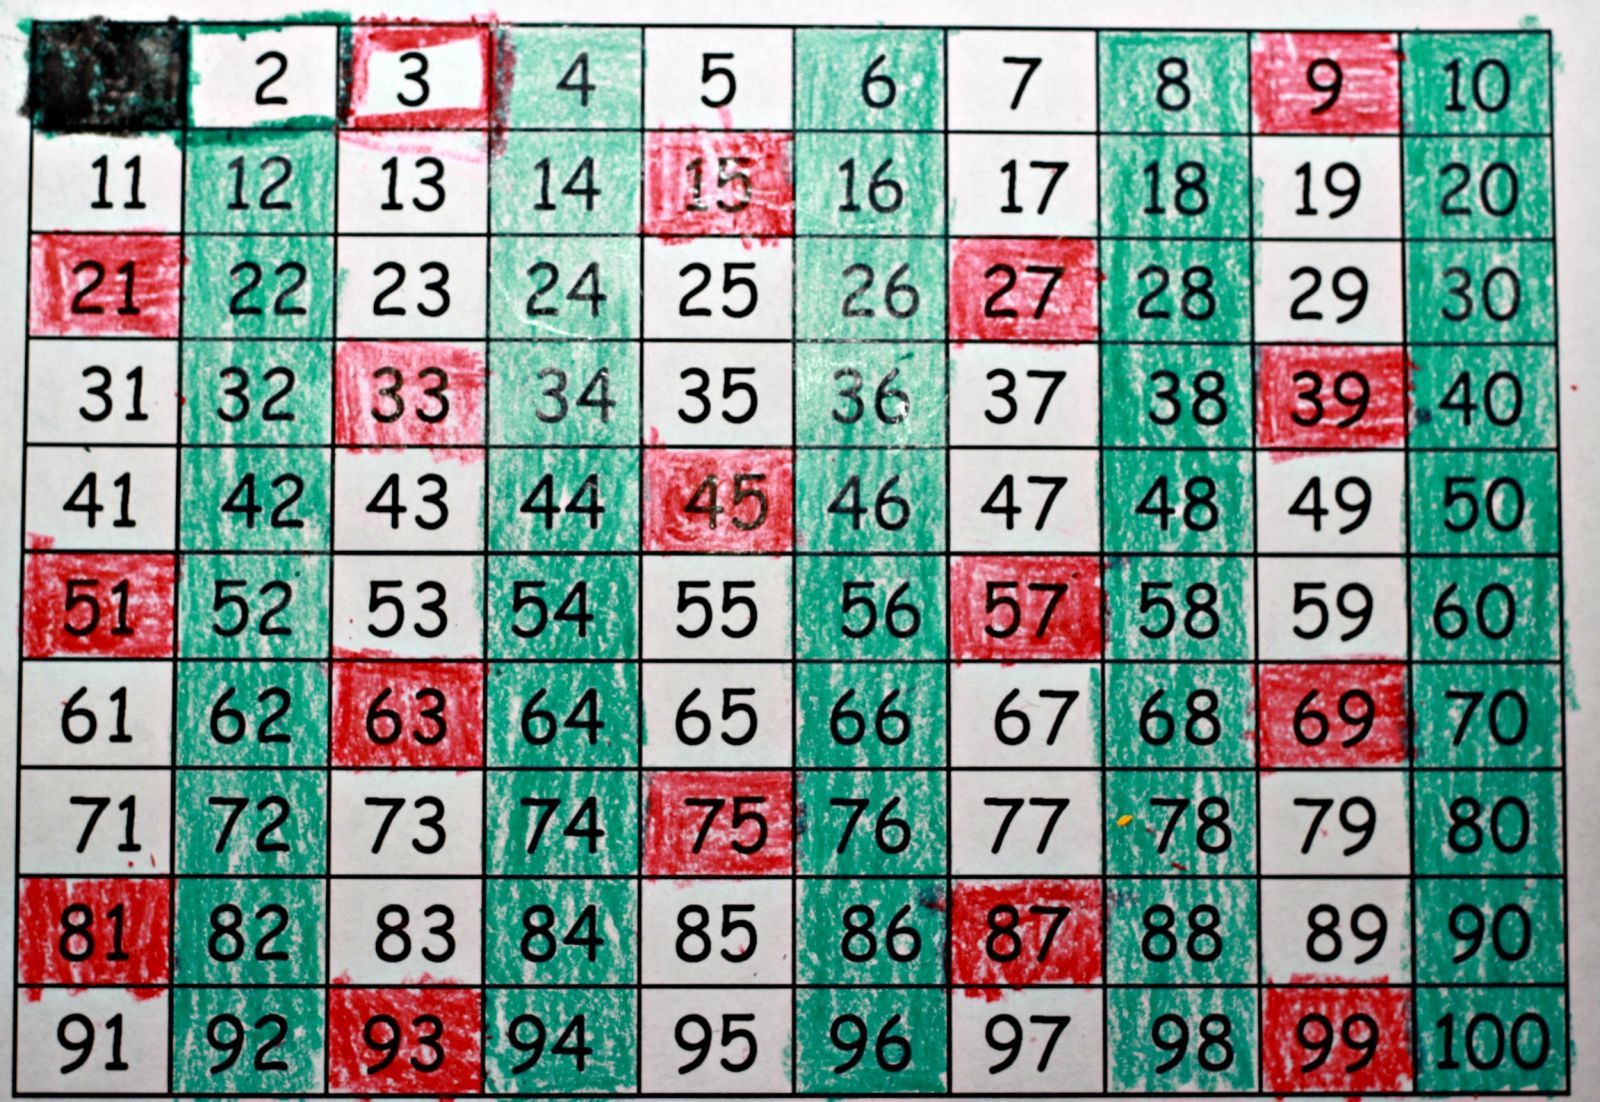 Finding Prime Numbers | multiplication.com